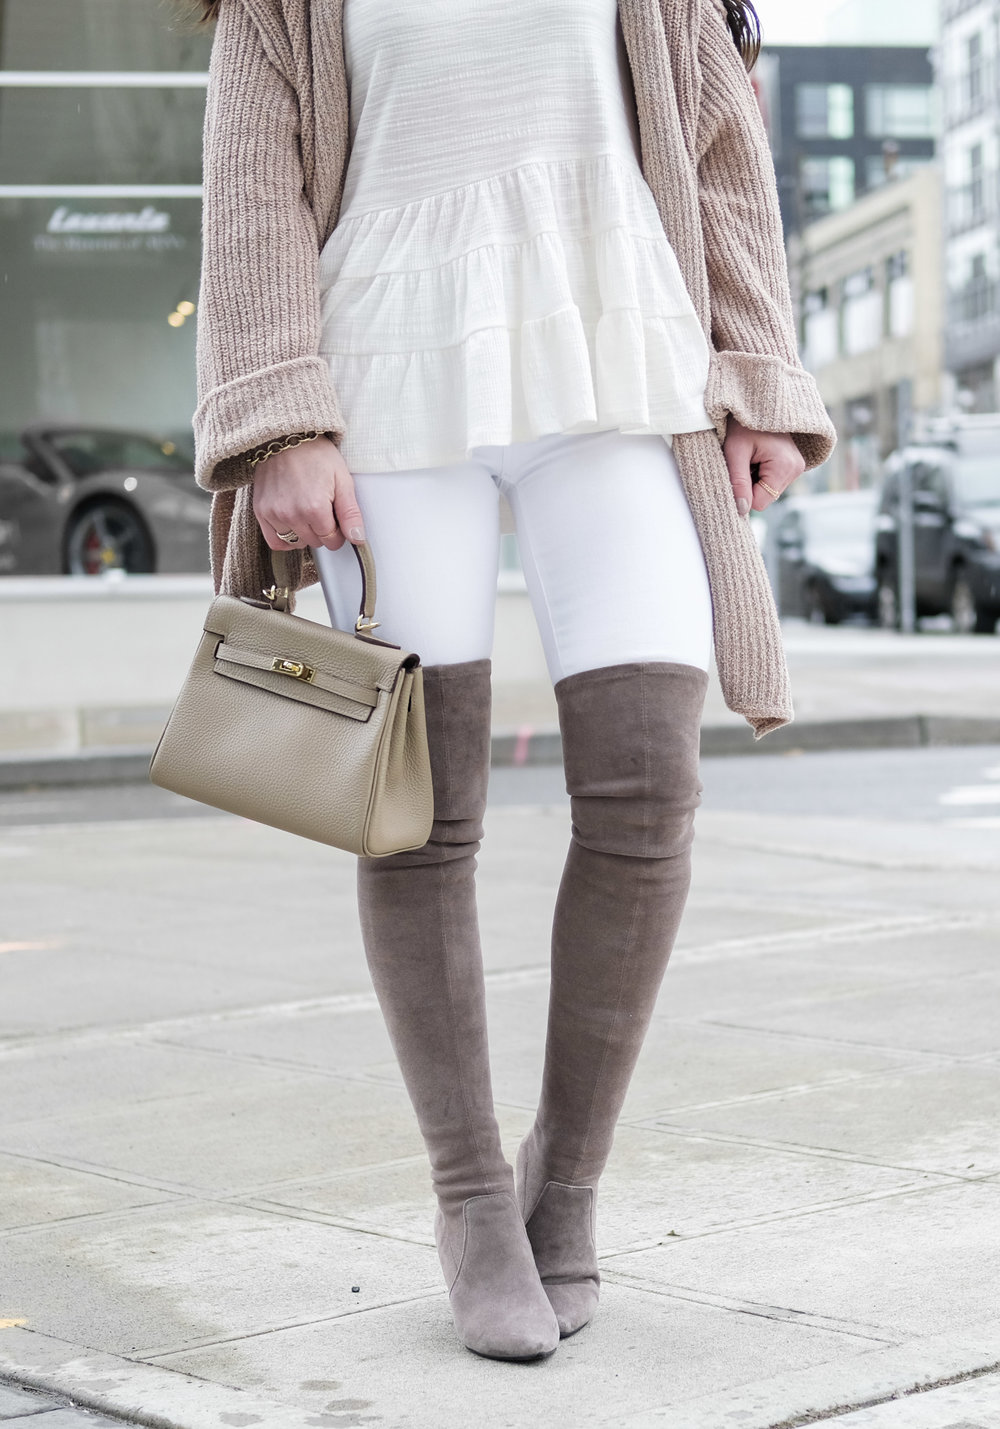 f1c982102d3 HOW TO WEAR OVER THE KNEE BOOTS IN THE SPRING — Me and Mr. Jones